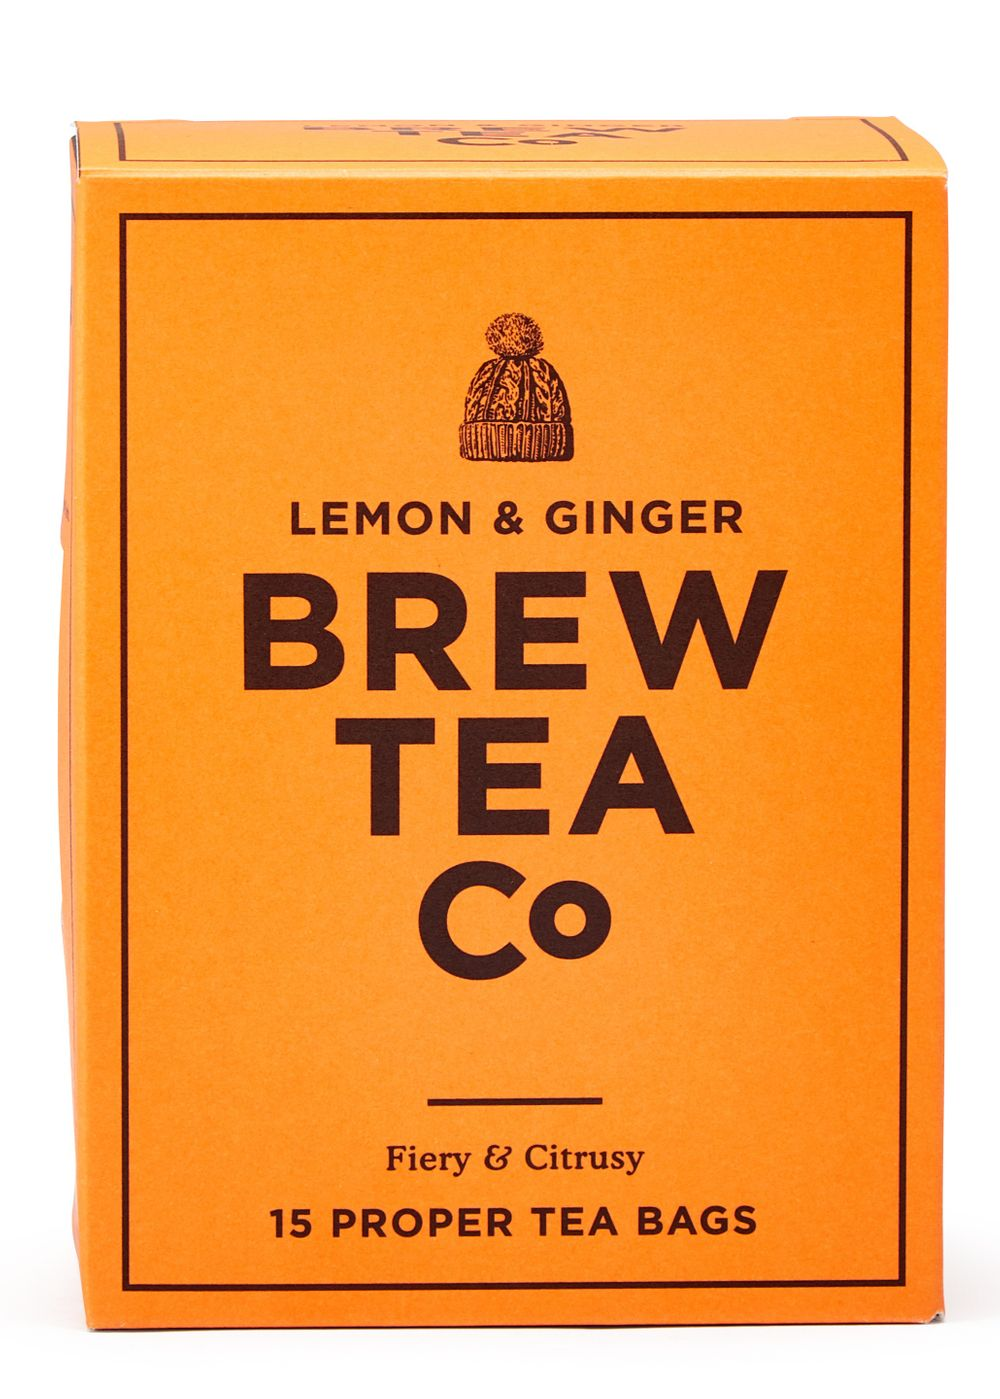 Lemon & Ginger - 15 Proper Tea Bags